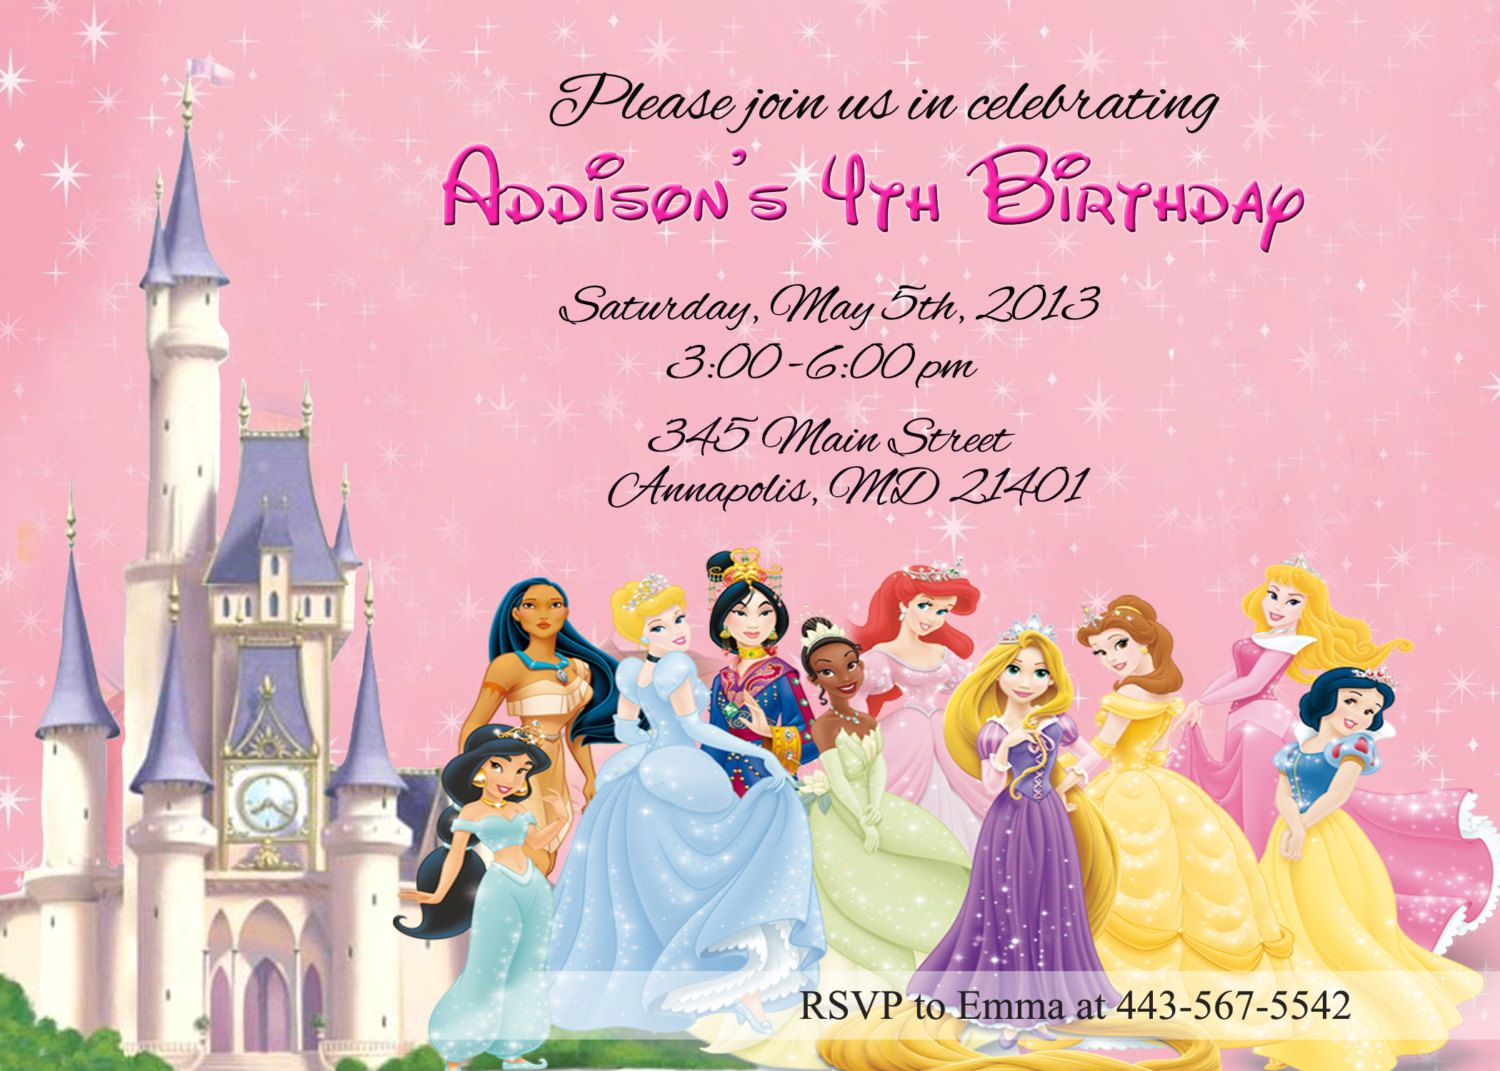 disney princess birthday party invitation | jordyn | pinterest, Birthday invitations